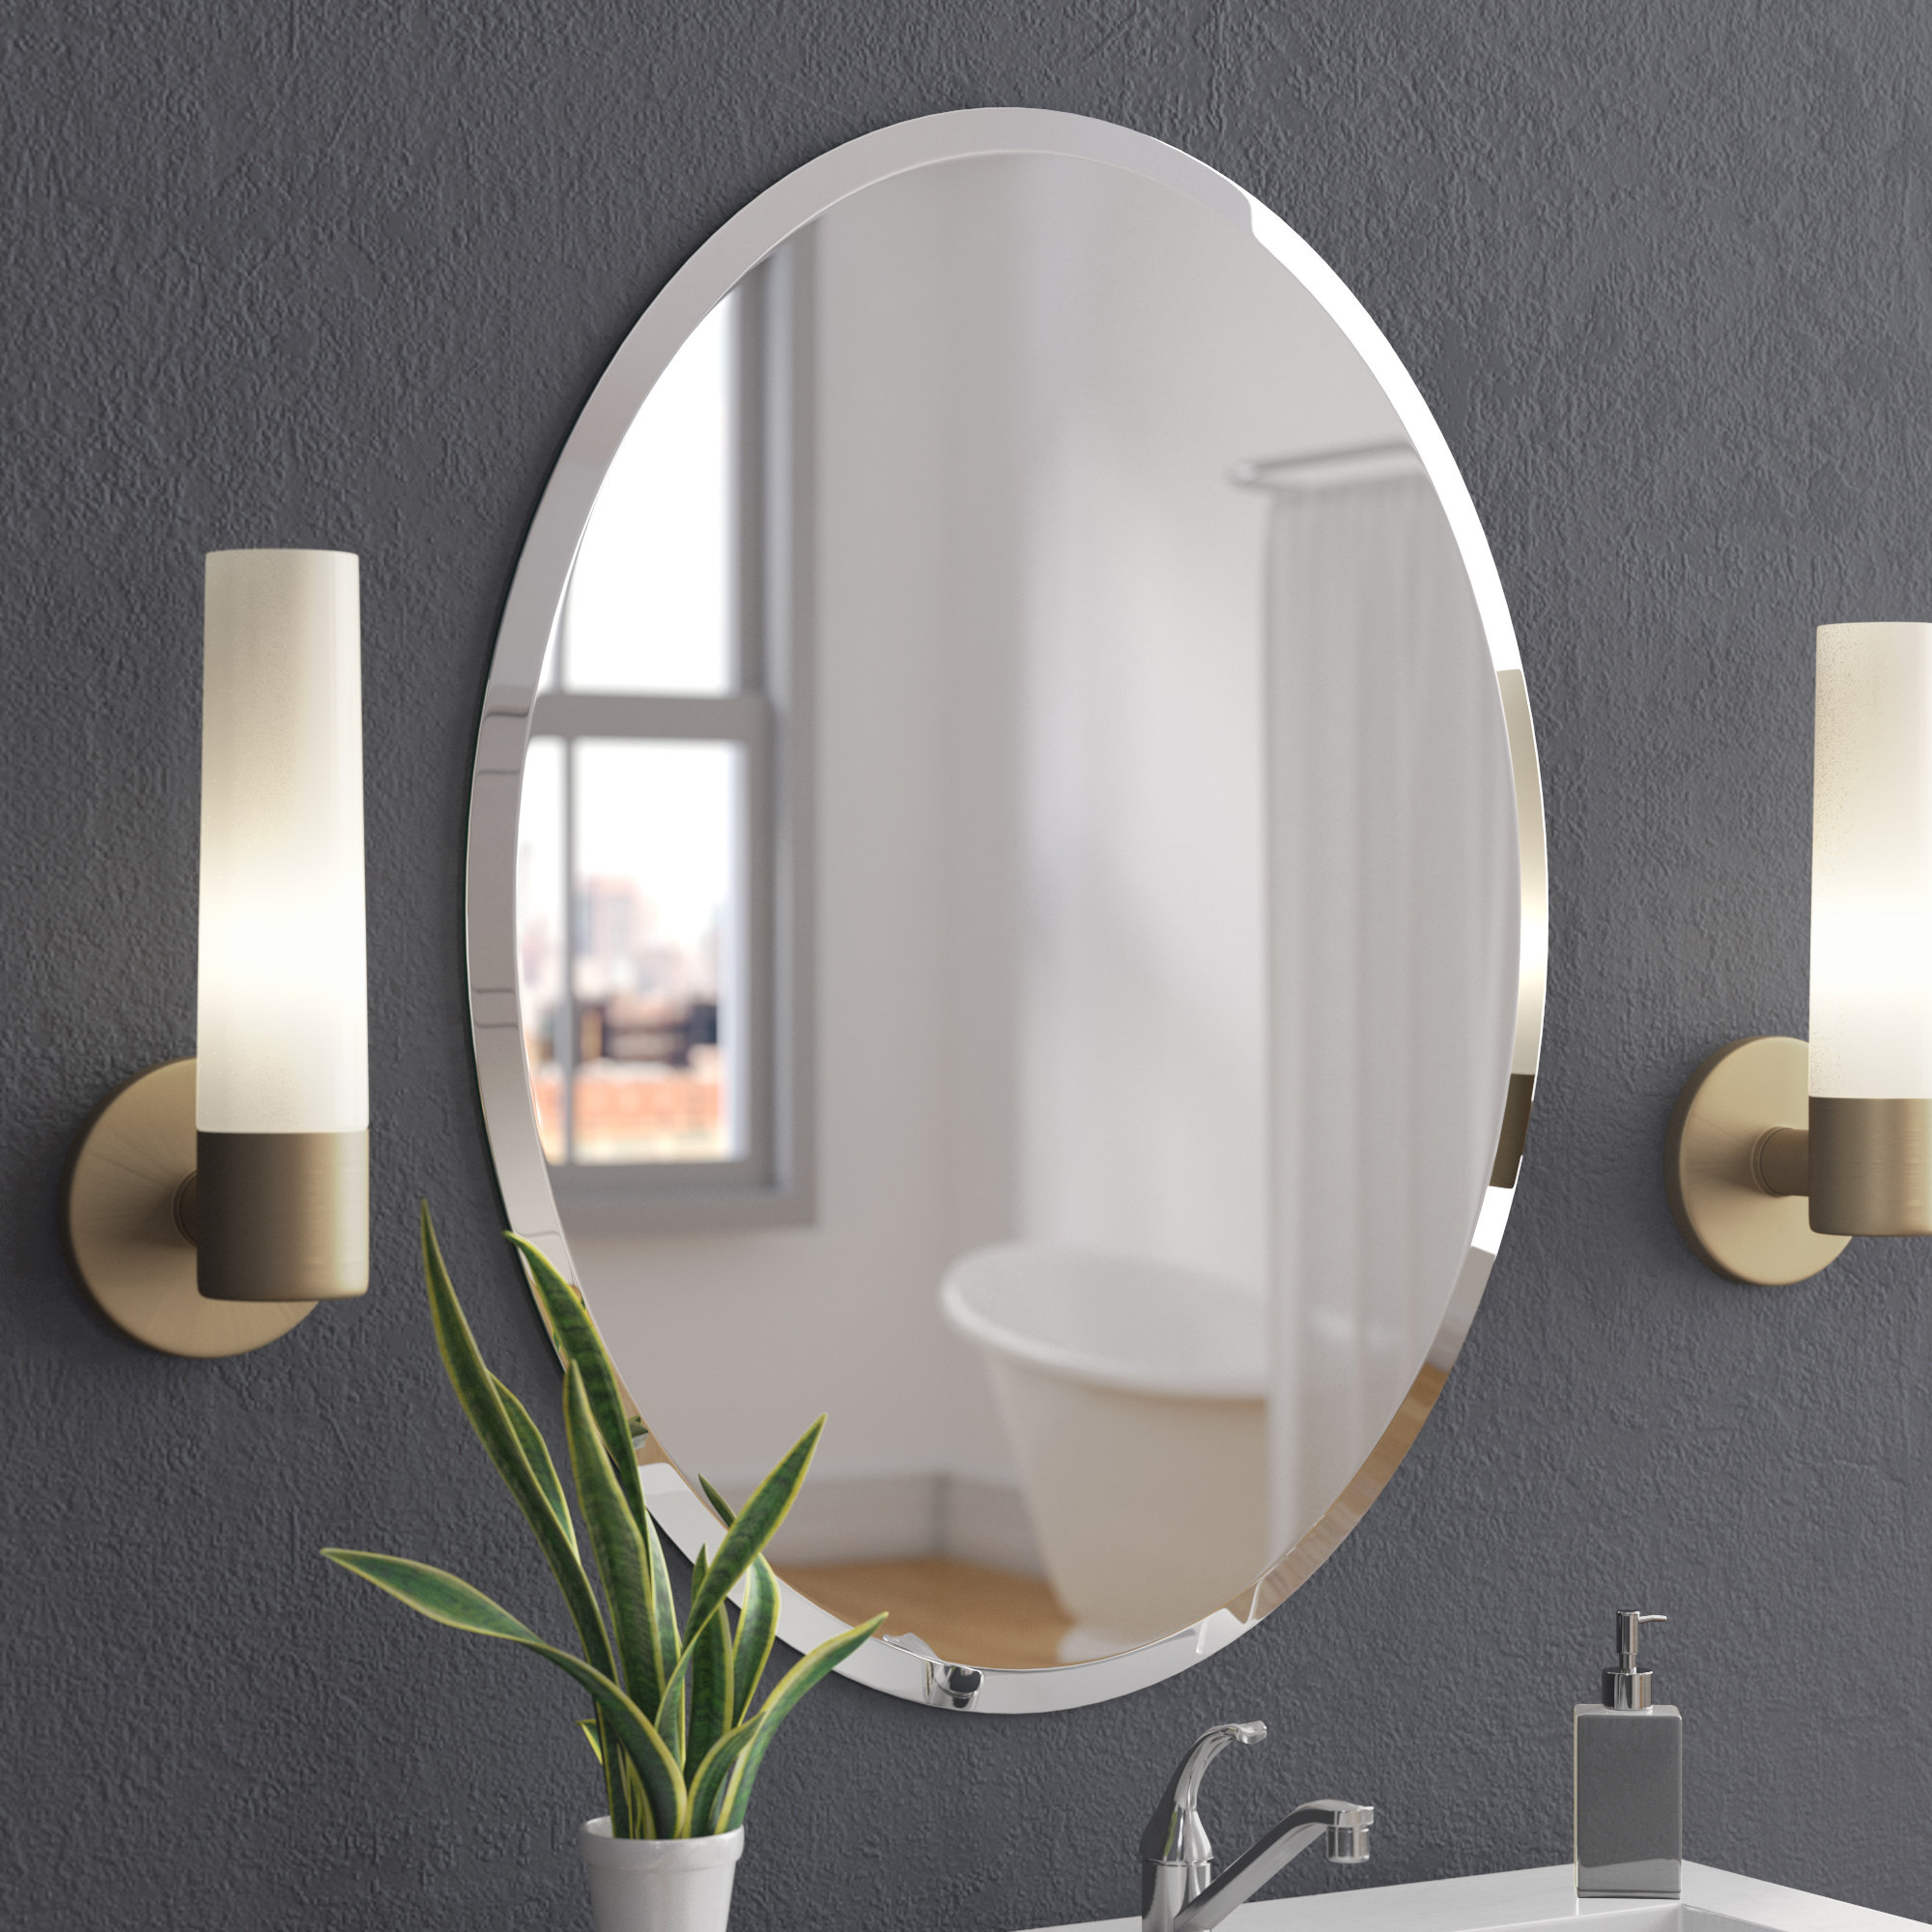 Callison Oval Bevel Frameless Wall Mirror Regarding Sajish Oval Crystal Wall Mirrors (View 9 of 30)